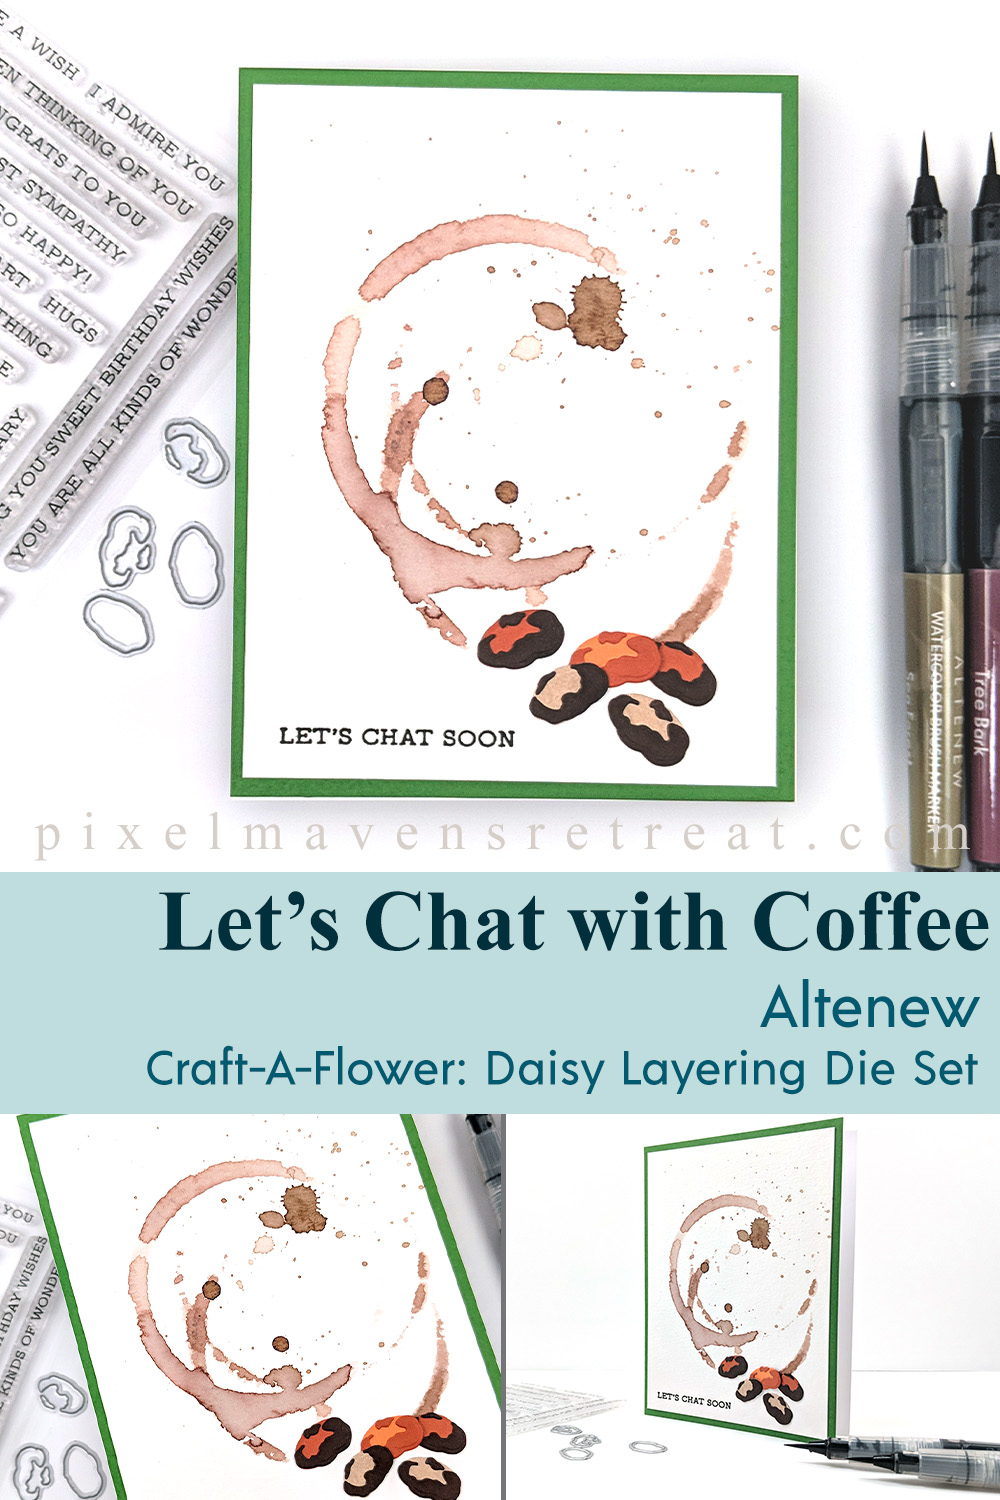 Altenew Craft-A-Flower: Daisy Release Blog Hop + Giveaway